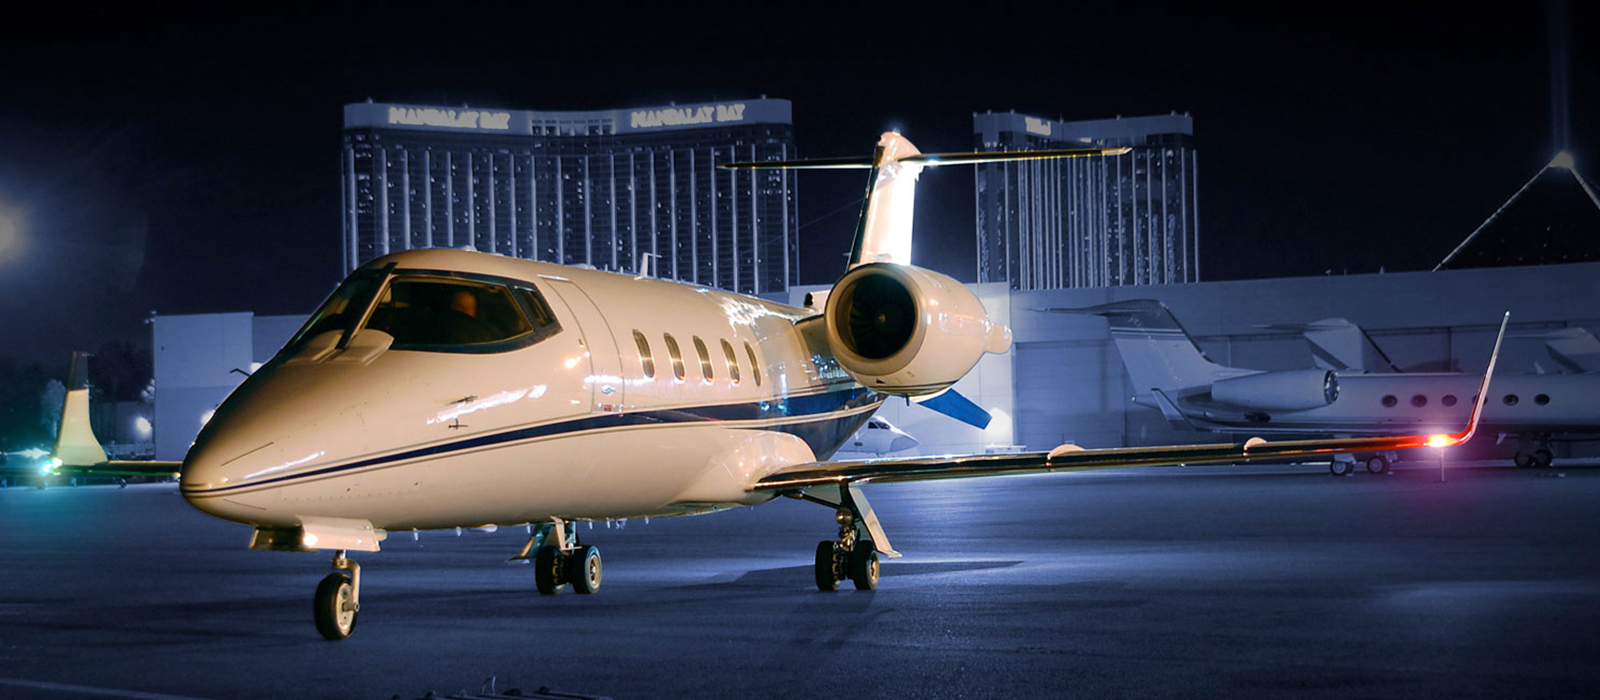 Private-Jet-Conference-Las-Vegas-Saxon-Insurance-Brokers-NBAA.jpg